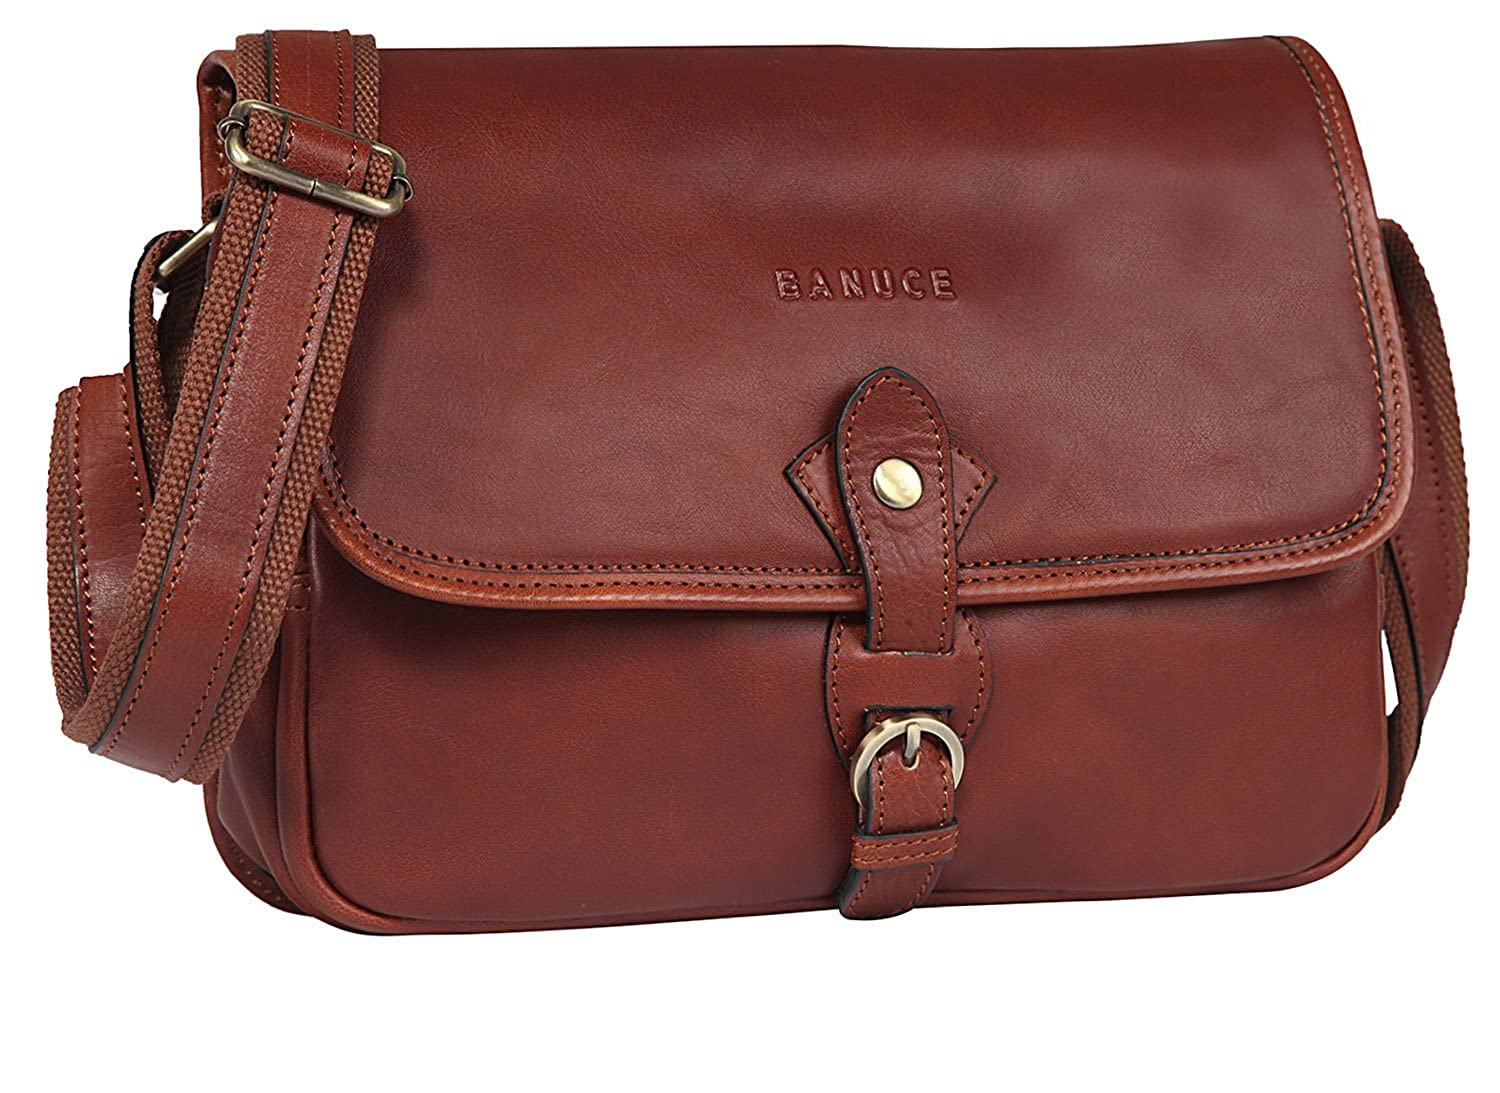 85f0088143db Banuce Vintage Full Grains Italian Leather Small Messenger Bag for Women Shoulder  Handbag Cross Body Satchel Purse  Handbags  Amazon.com